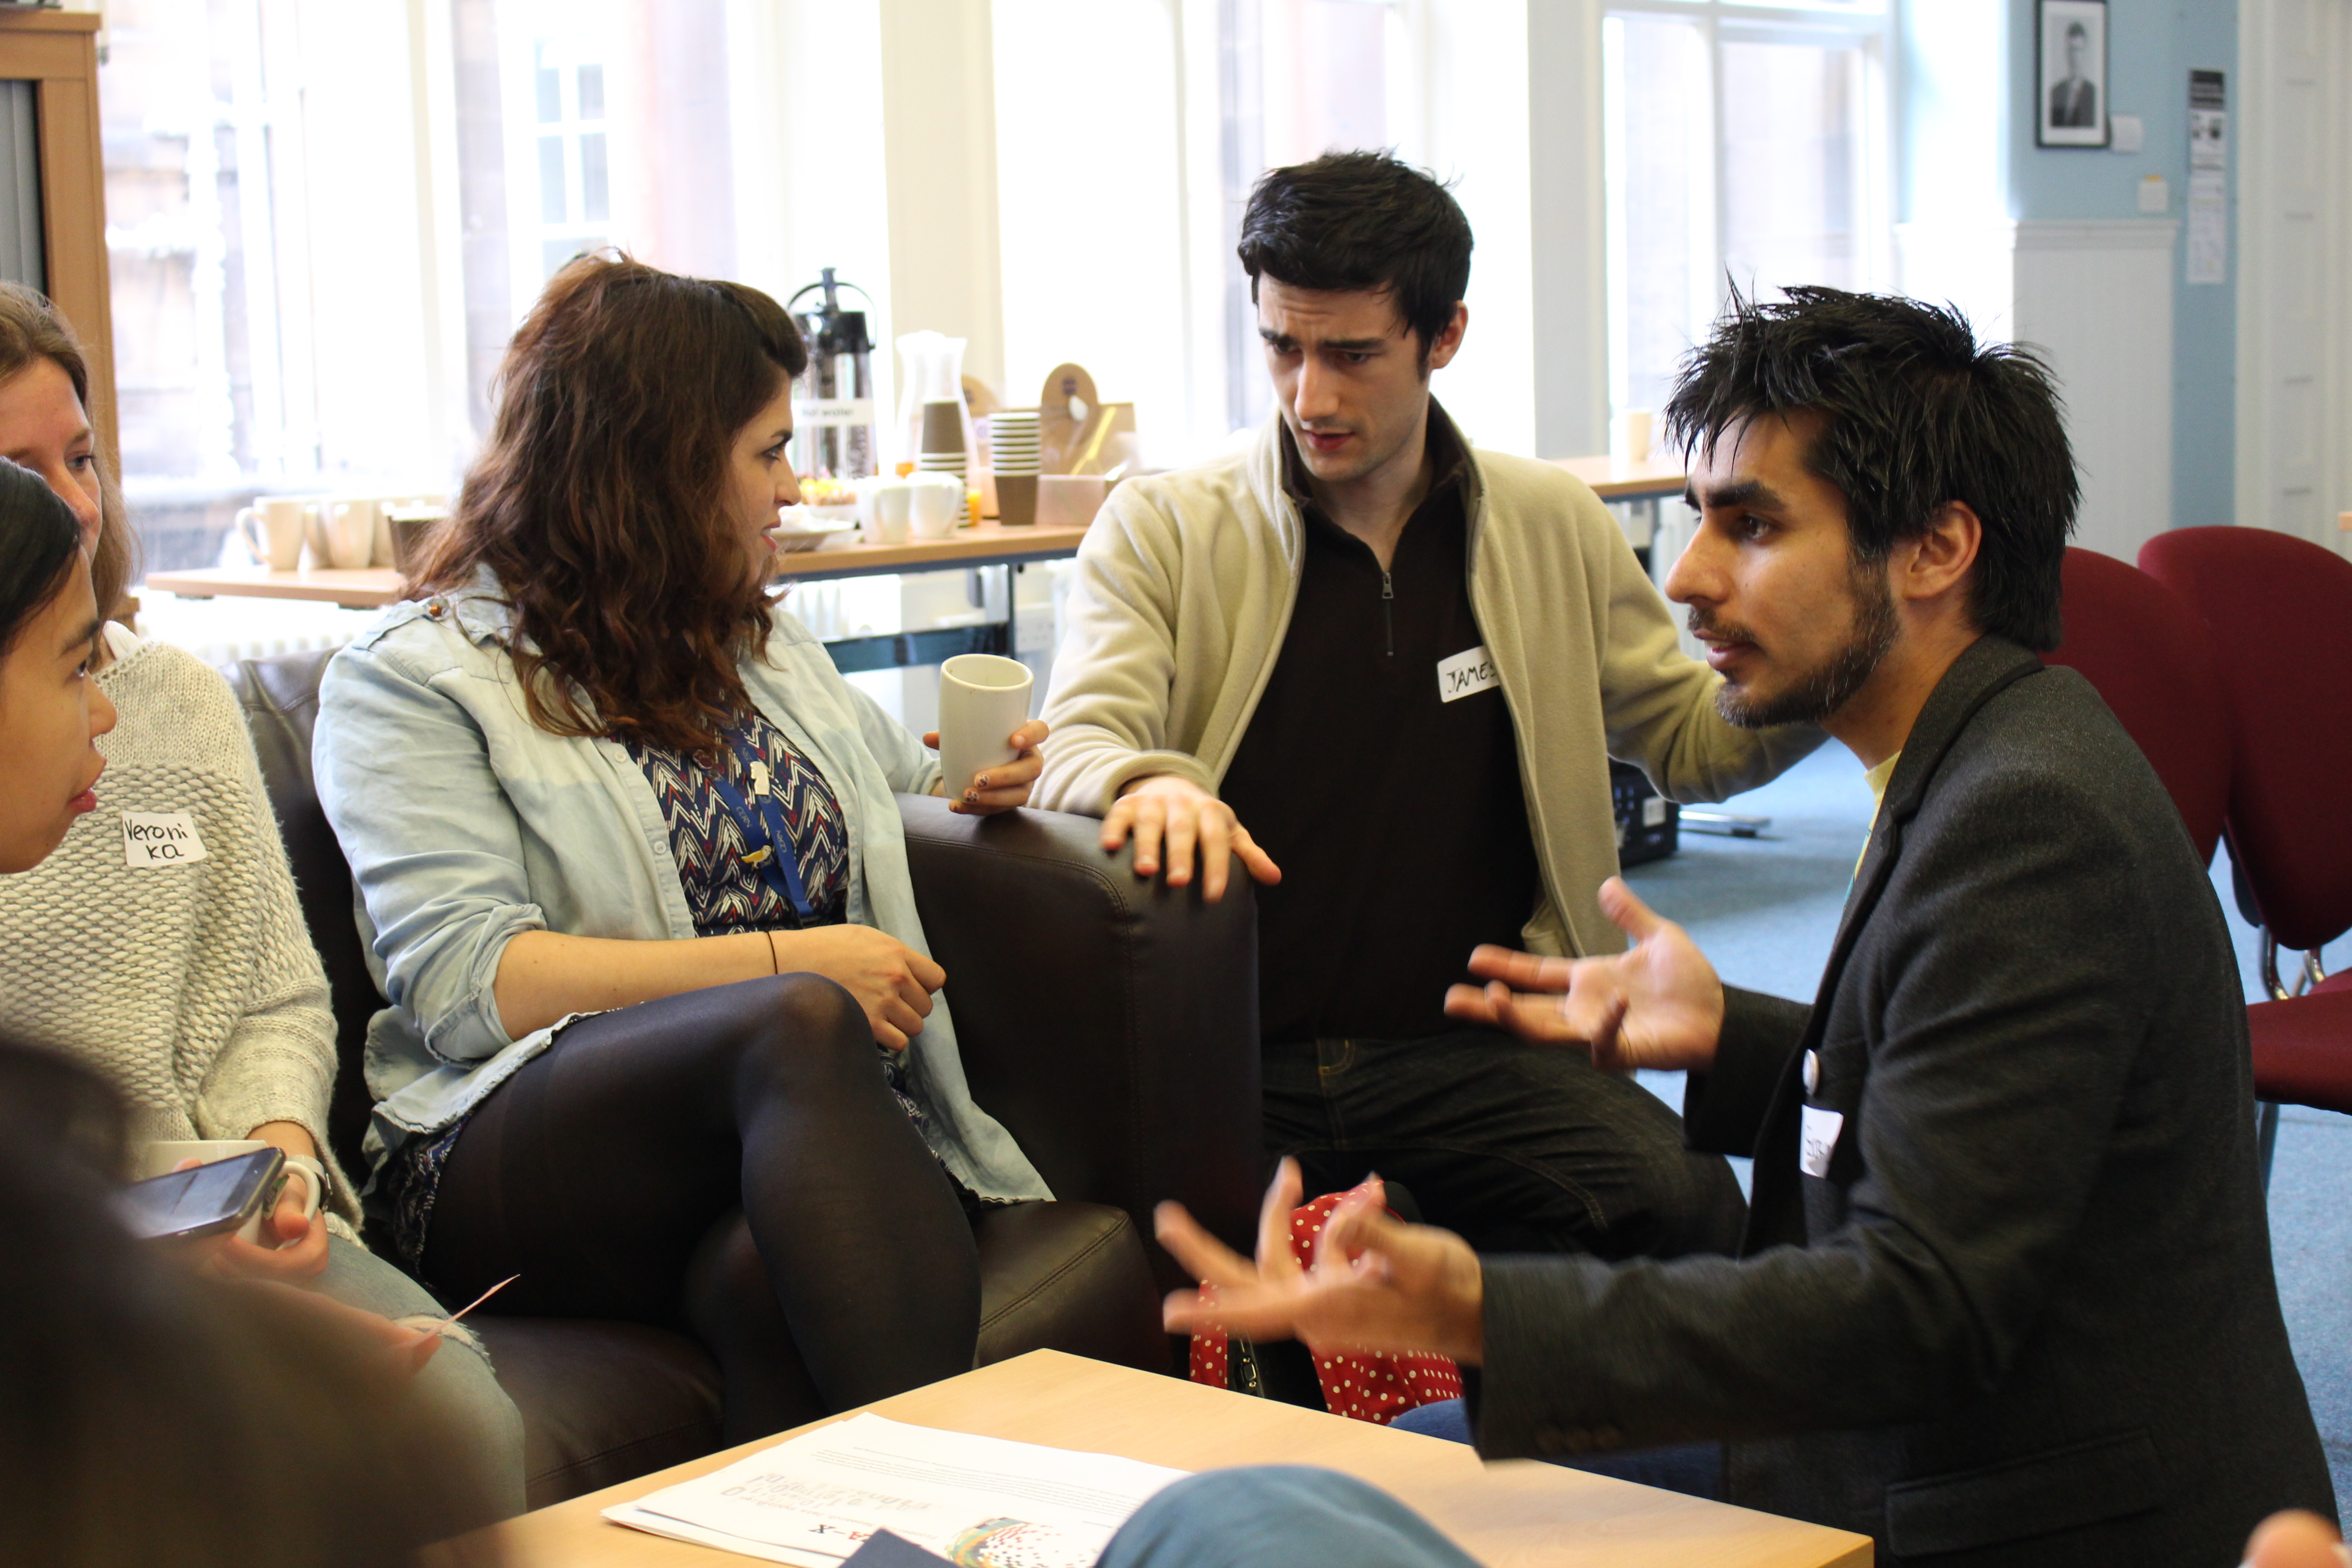 Participants in discussion at the workshop